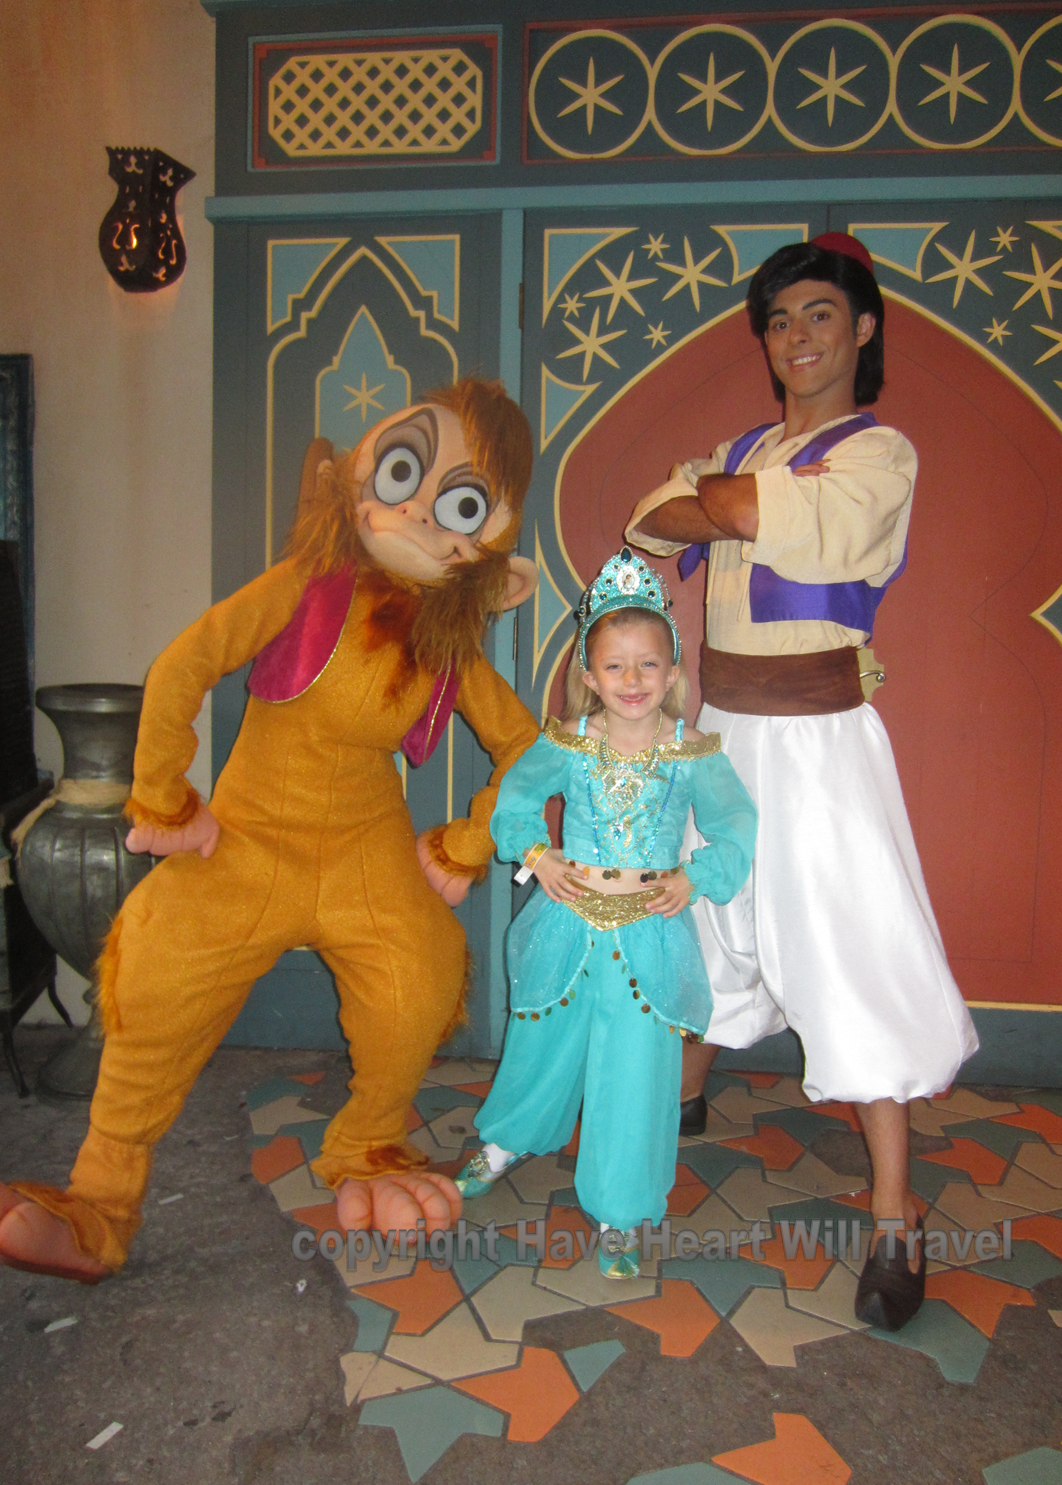 A and Aladdin Abu hhwt